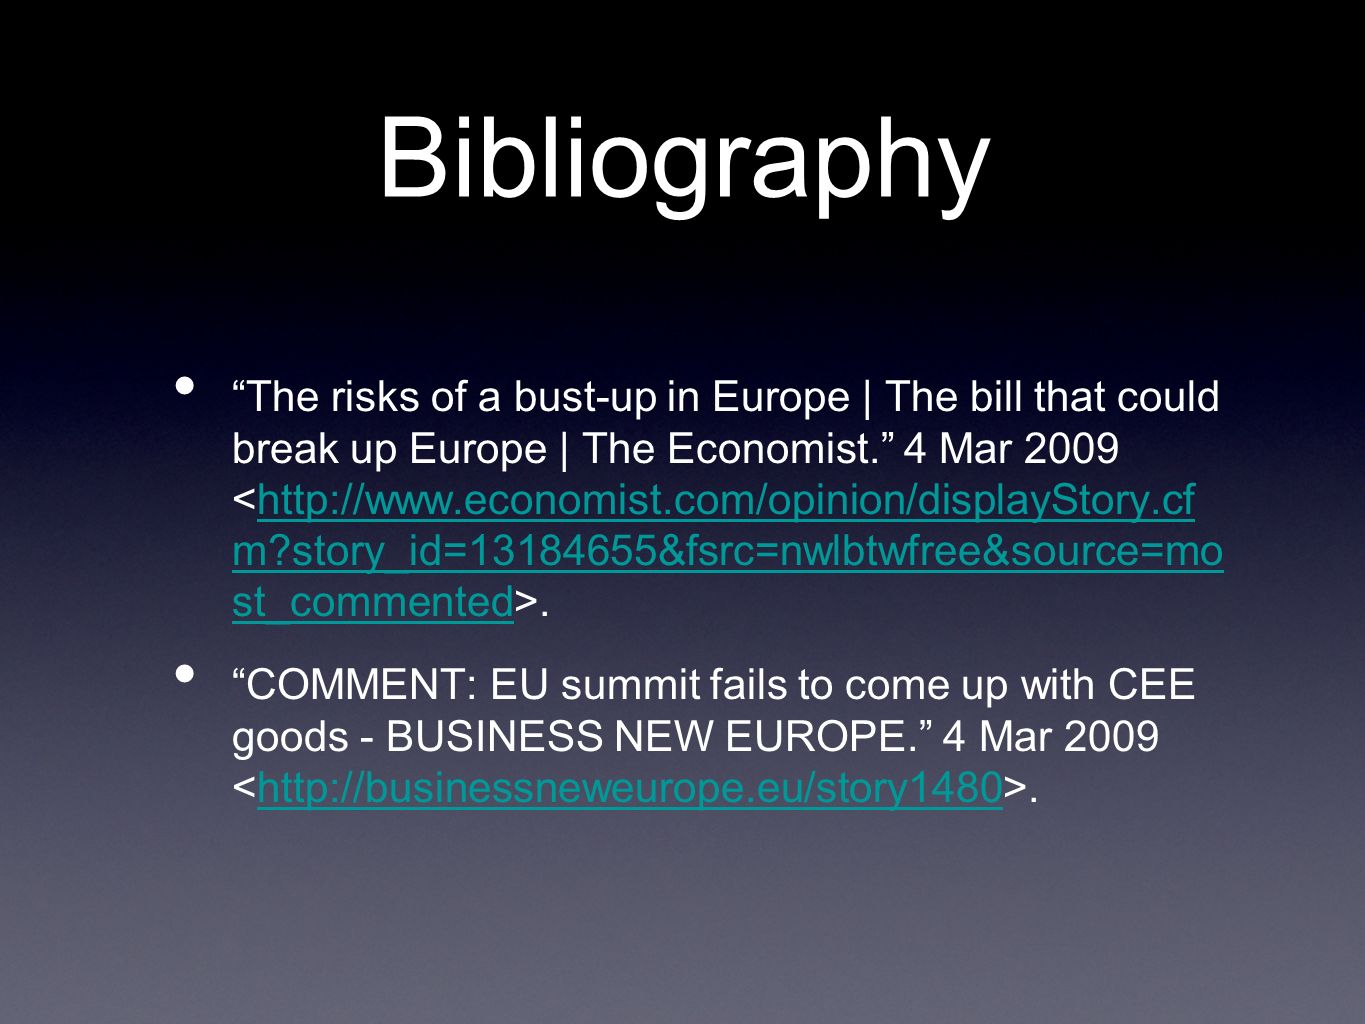 Bibliography The risks of a bust-up in Europe | The bill that could break up Europe | The Economist.